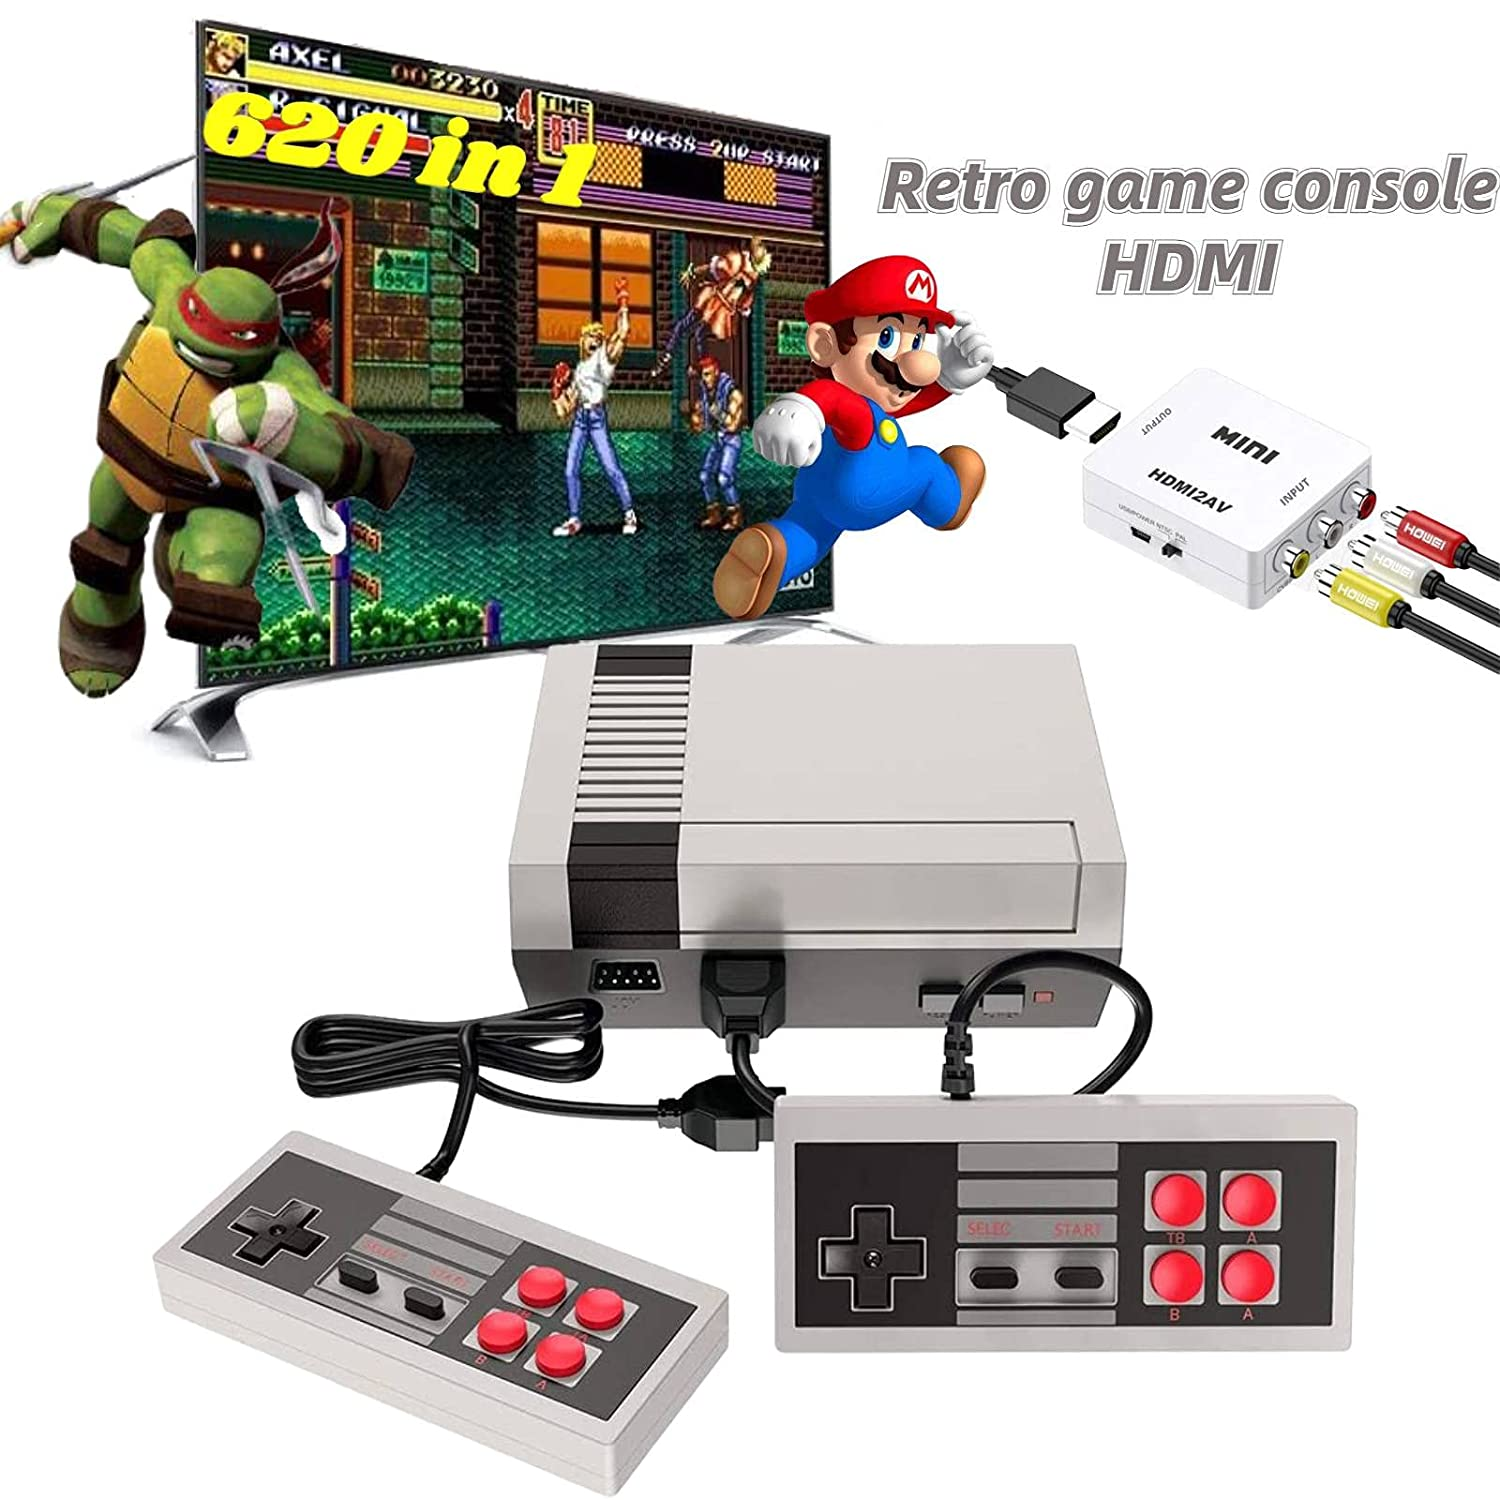 Classic Mini NES Retro Game Console with Video Built-in NEW before selling 620 Max 87% OFF